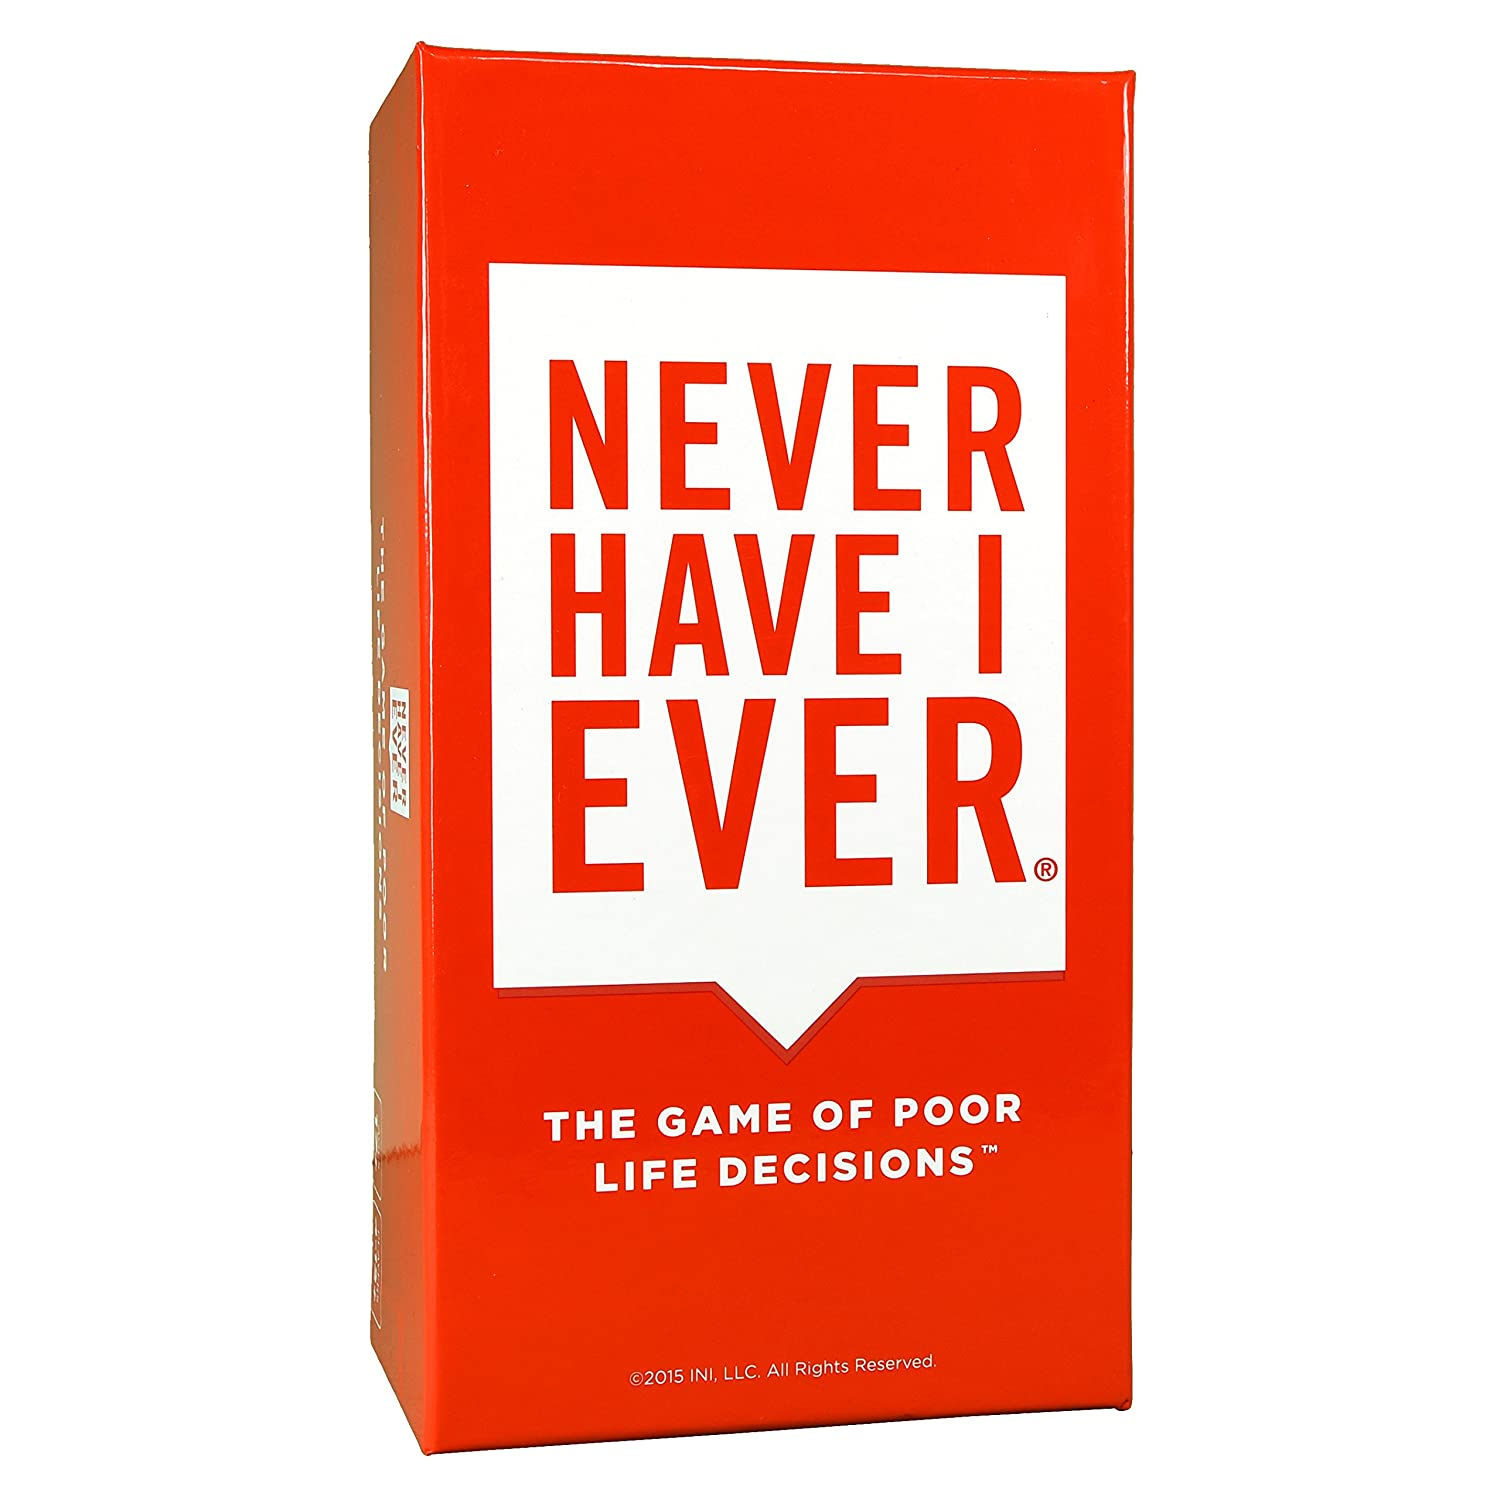 Never have I everhttps://amzn.to/2PryIQL